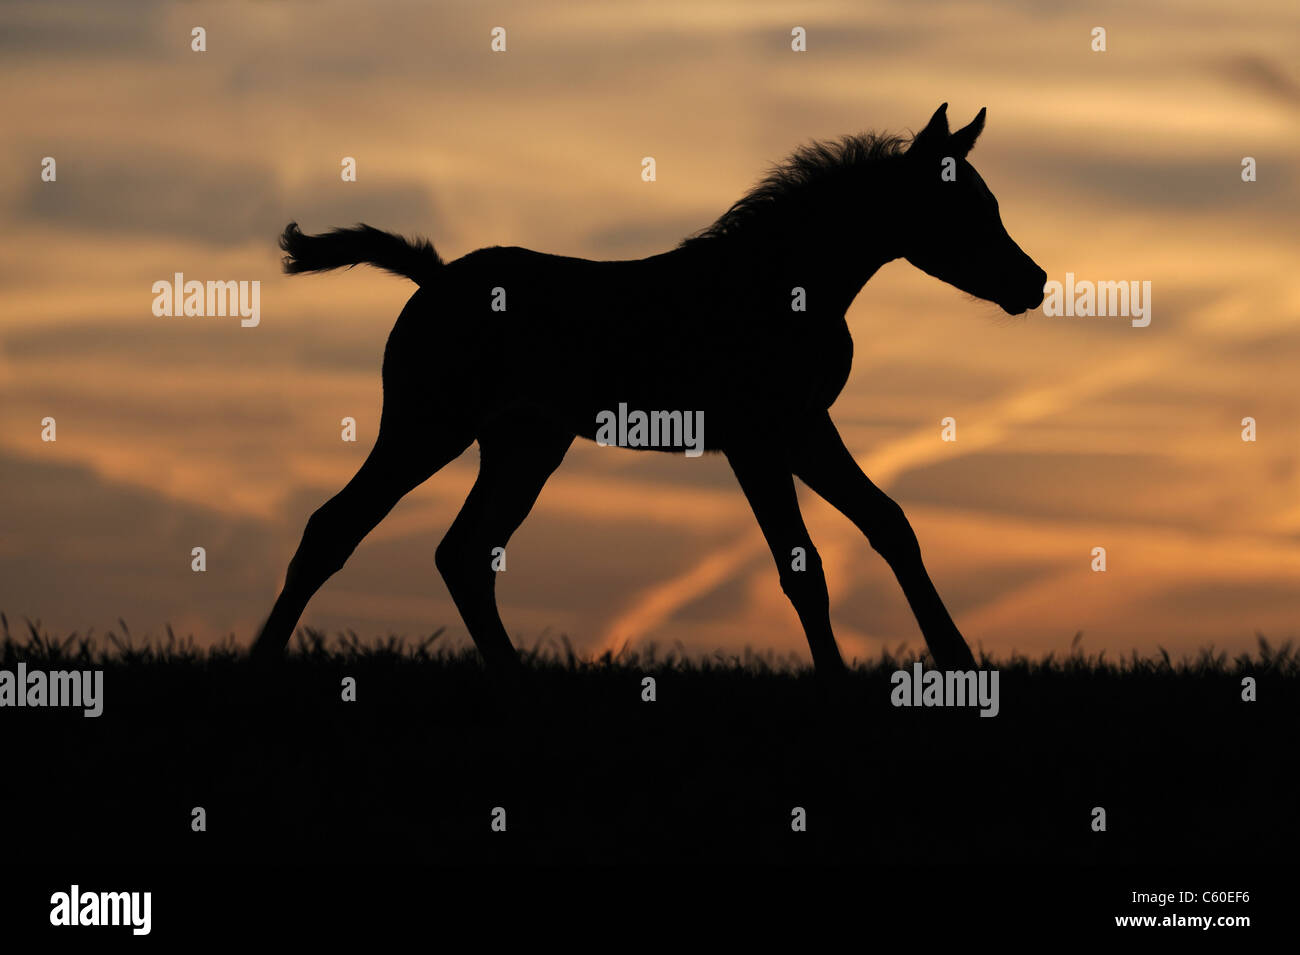 Purebred Arabian Horse (Equus ferus caballus). Foal in a gallop silhouetted against the setting sun. - Stock Image